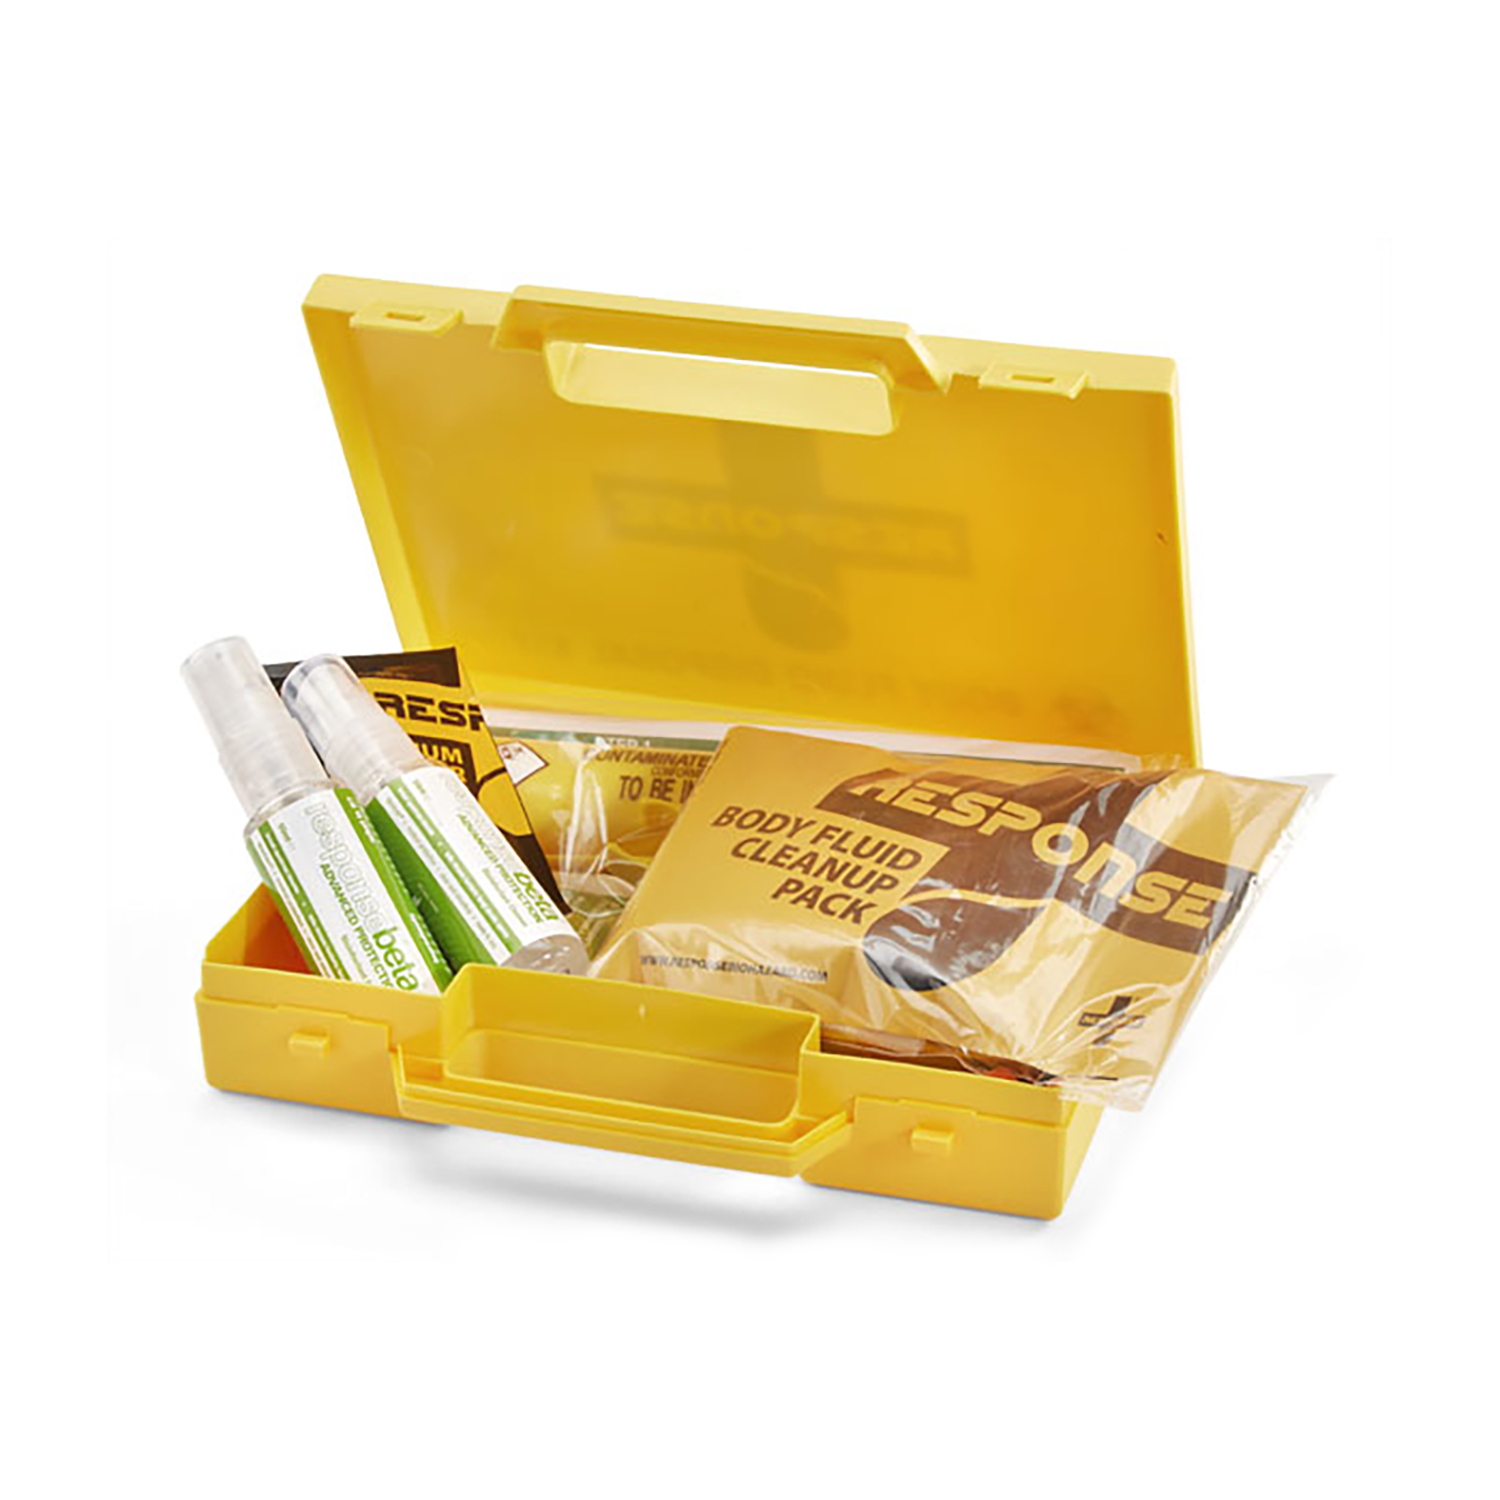 Image for 5 Star Facilities Body Fluid & Sharps Kit